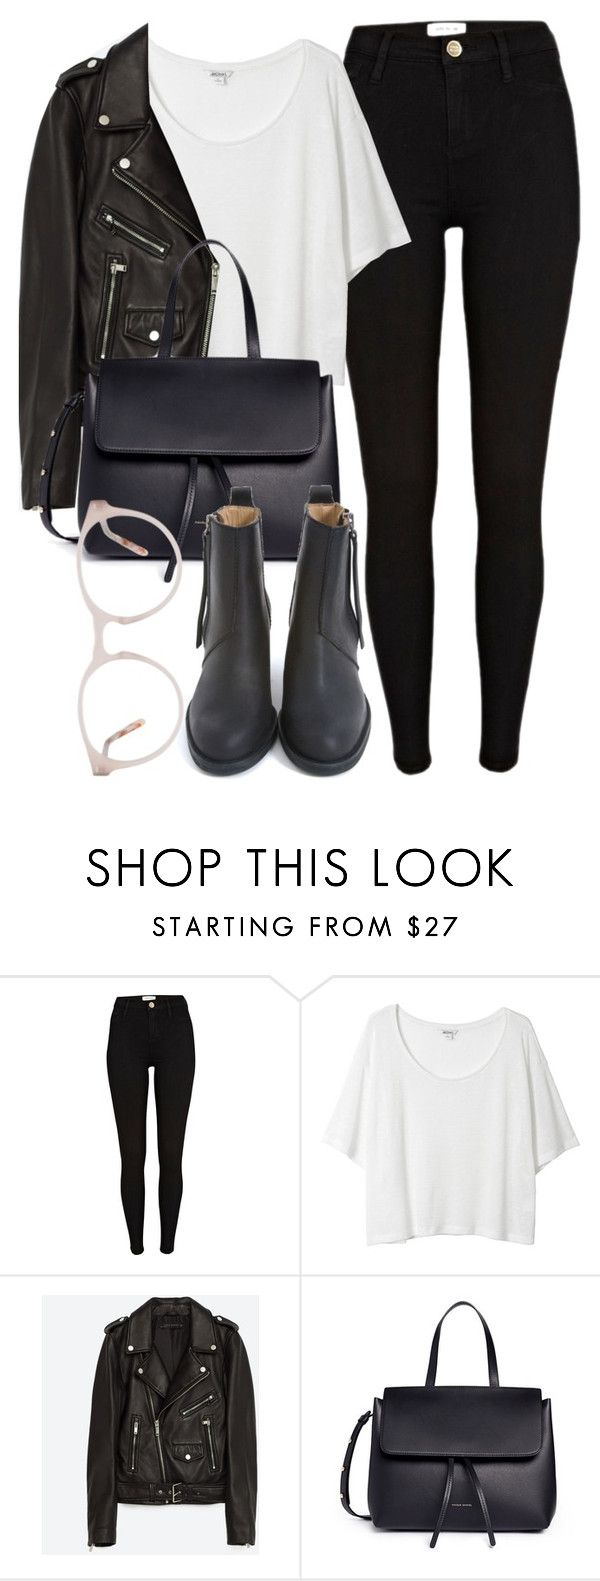 """""""Untitled #6398"""" by laurenmboot ❤ liked on Polyvore featuring River Island, Monki, Jakke, Mansur Gavriel and Acne Studios"""